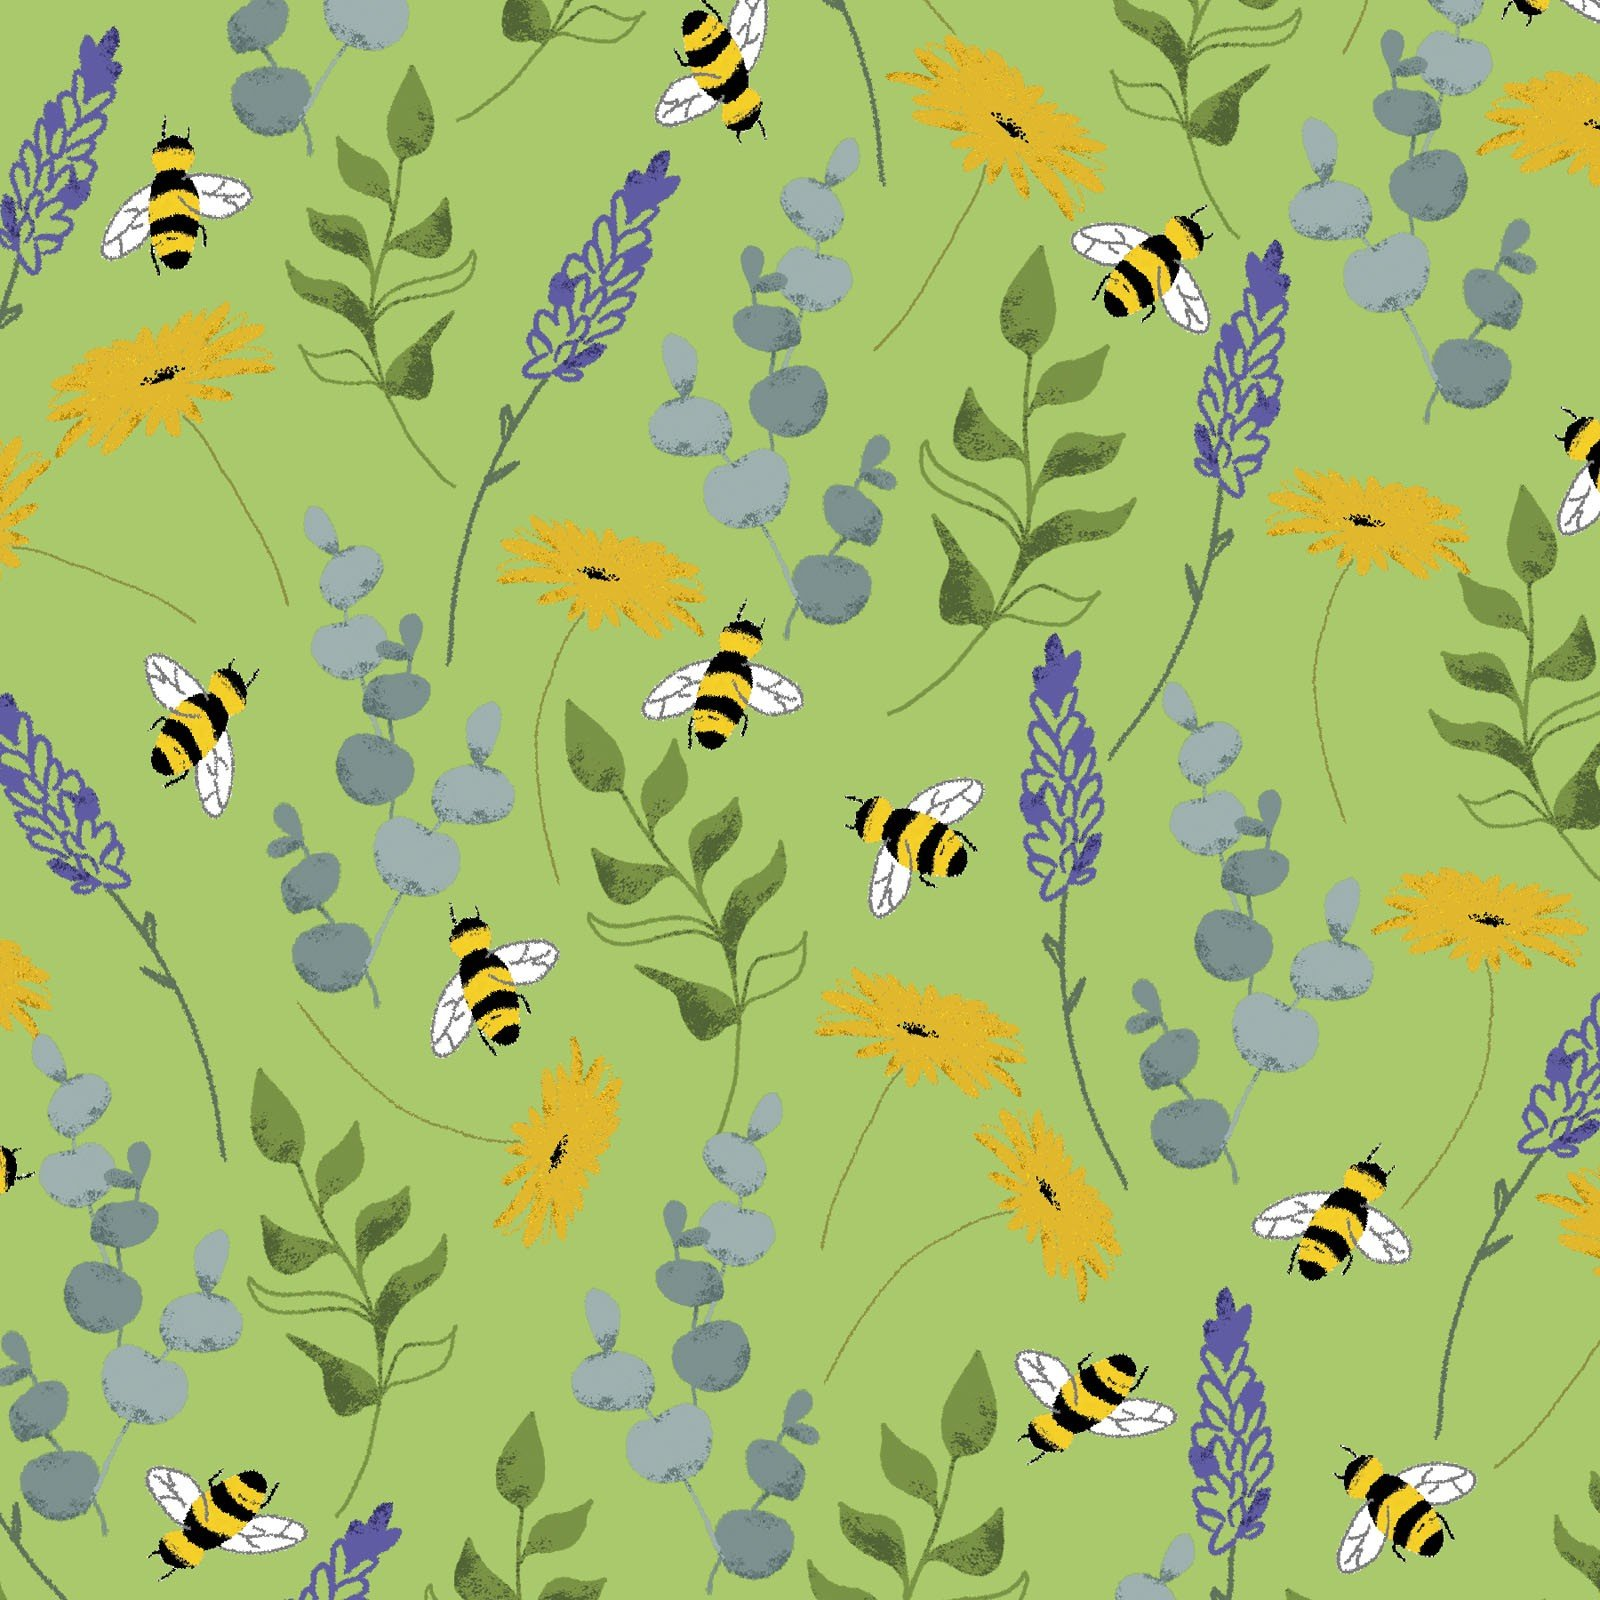 3 Wishes Feed the Bees by Deanne Beasley 17216 GRN Green Wild Flowers $8.30/yd